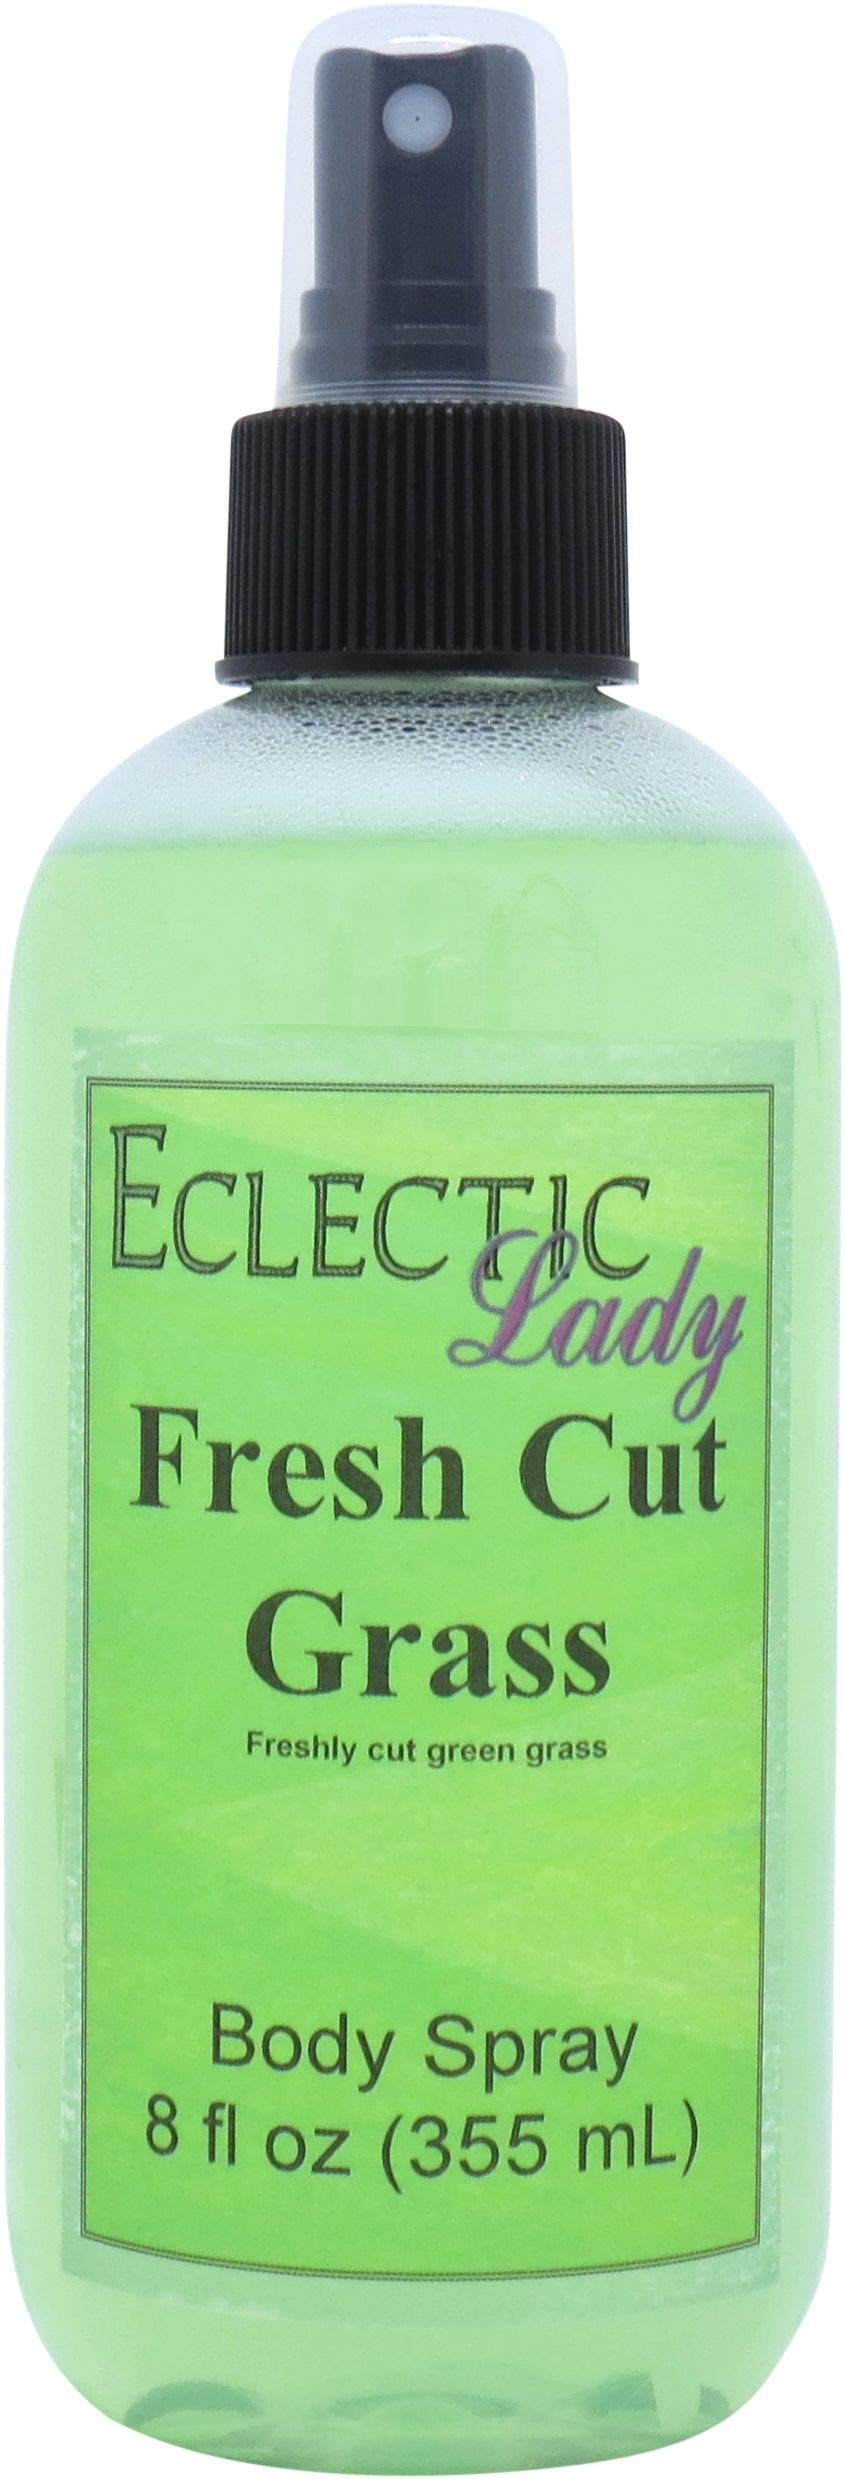 Fresh Cut Grass Body Spray, 8 ounces